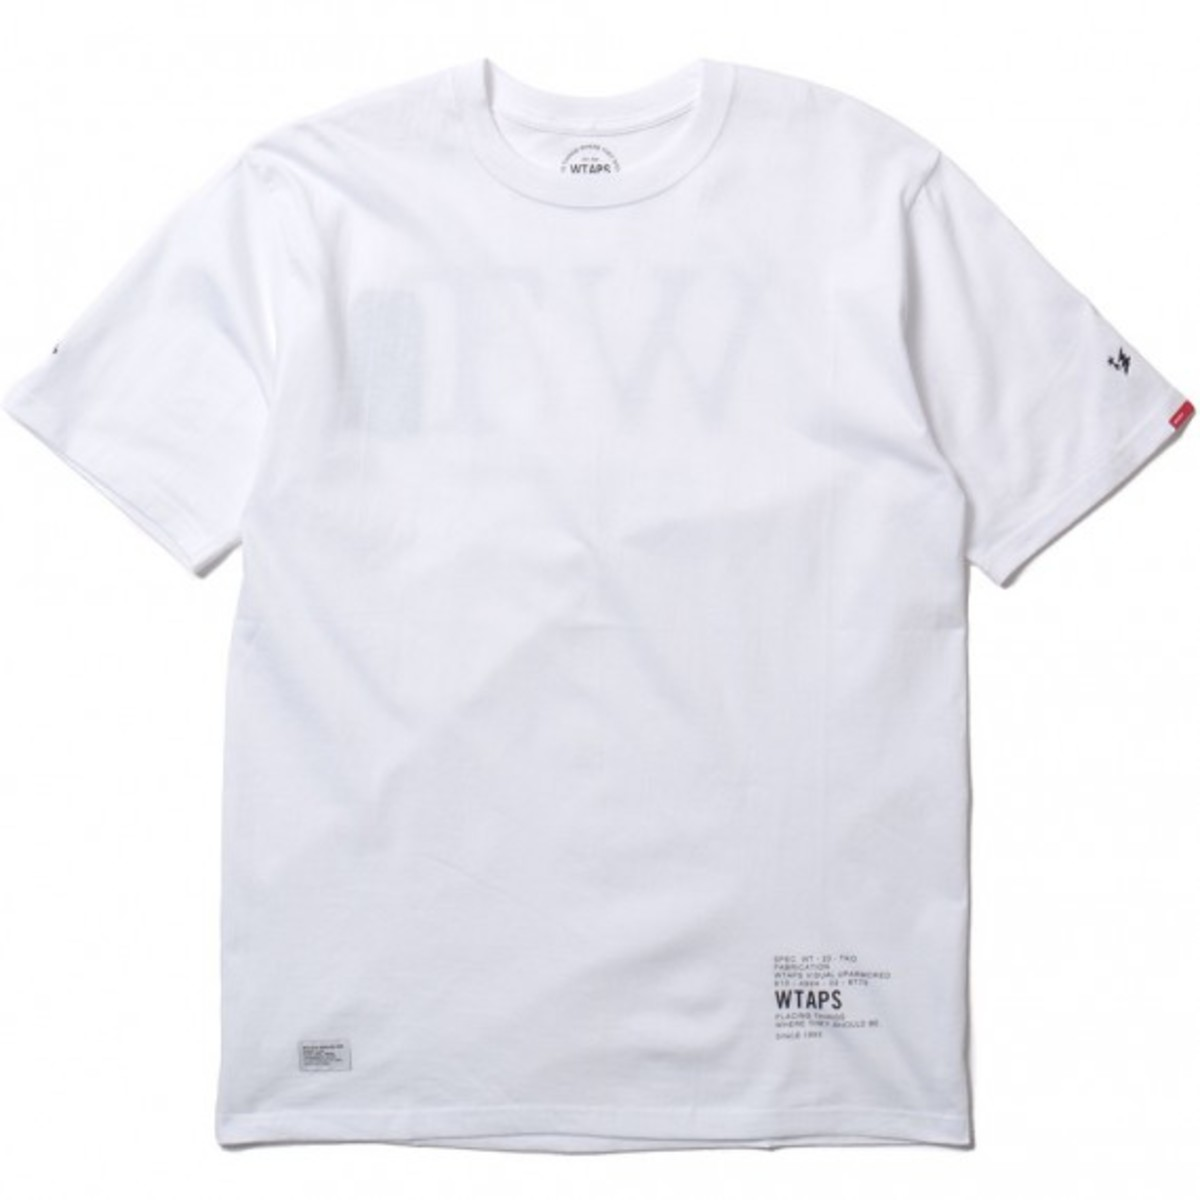 wtaps-august-2012-delivery-15